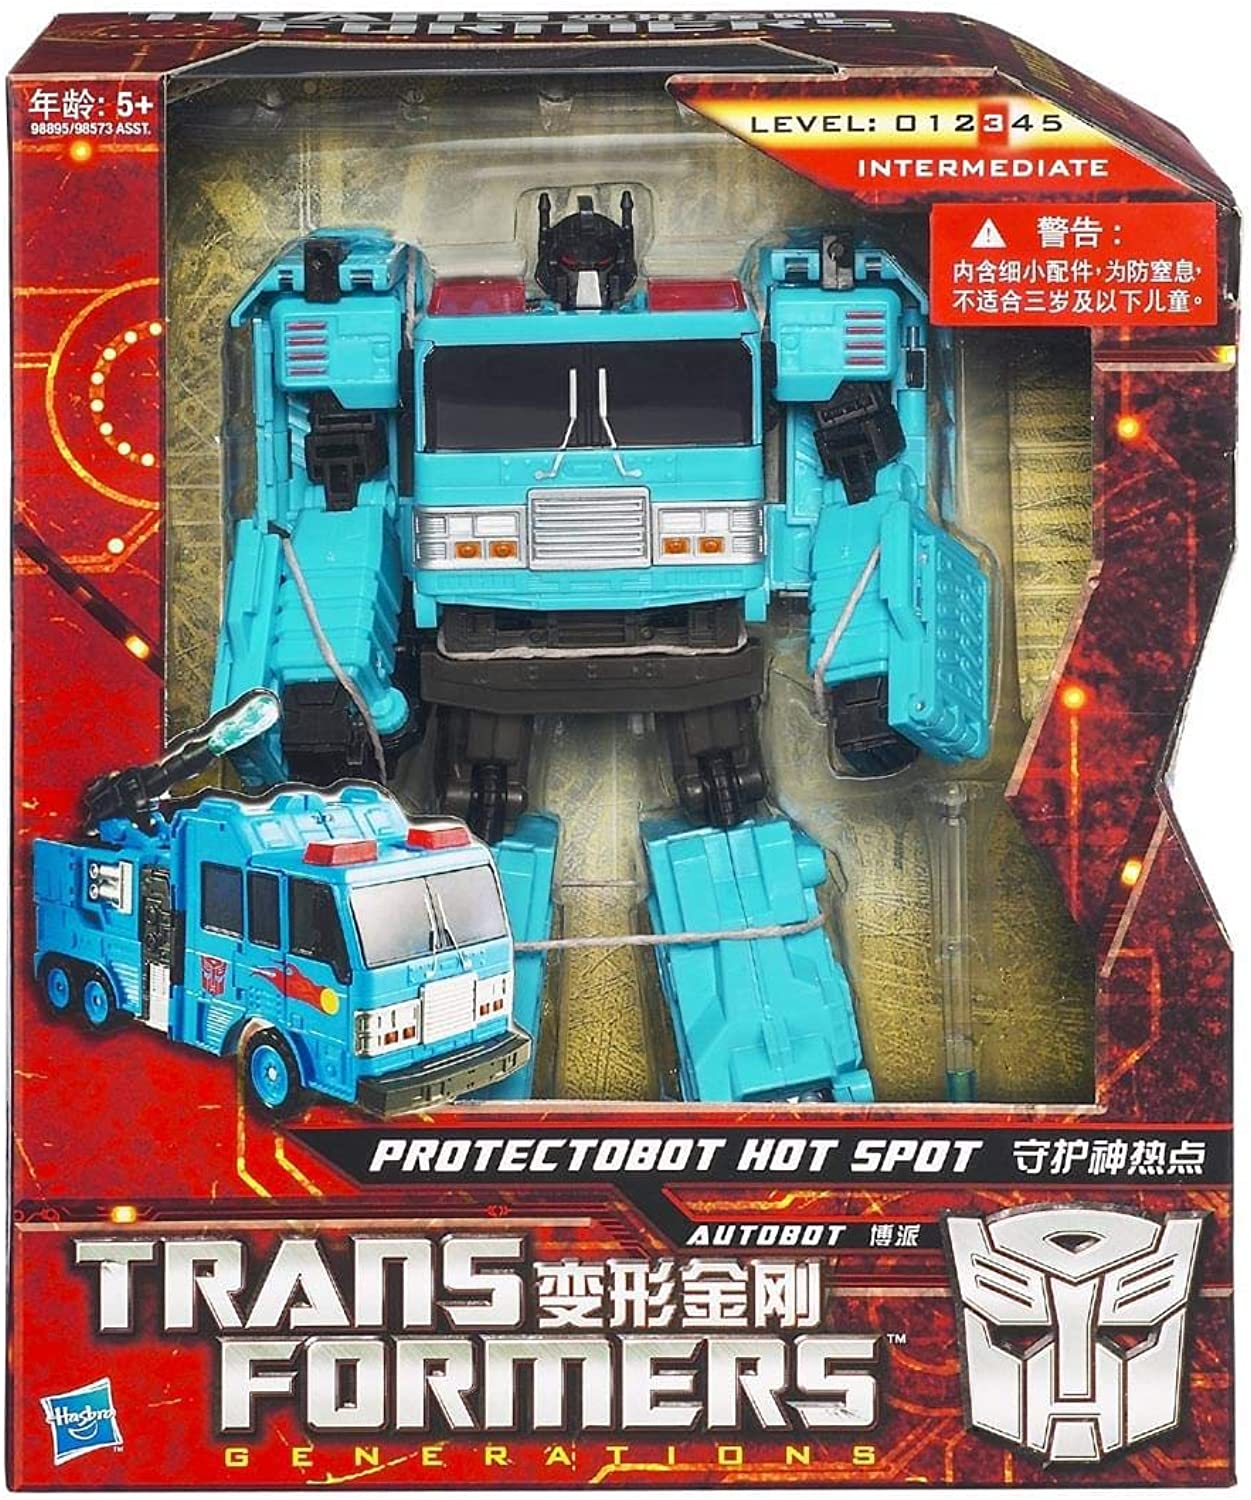 Transformers Generations GDO Voyager Class Predectobot Hot Spot